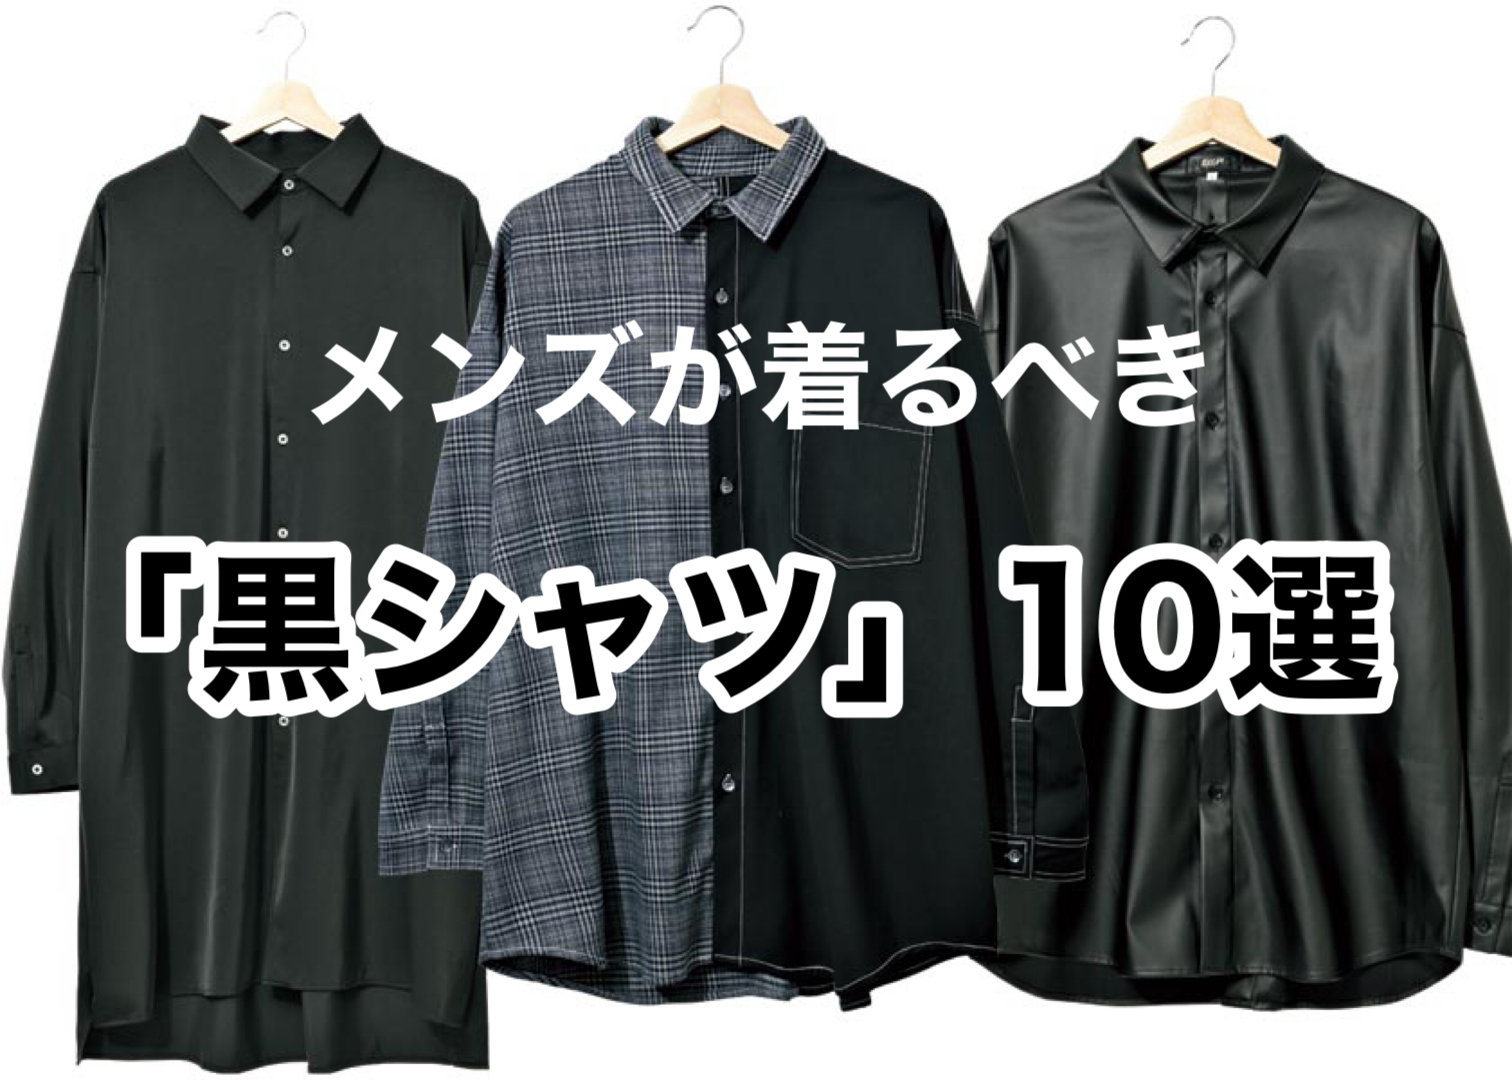 https://fineboys-online.jp/thegear/content/theme/img/org/article/3395/main.jpg?t=1622431620